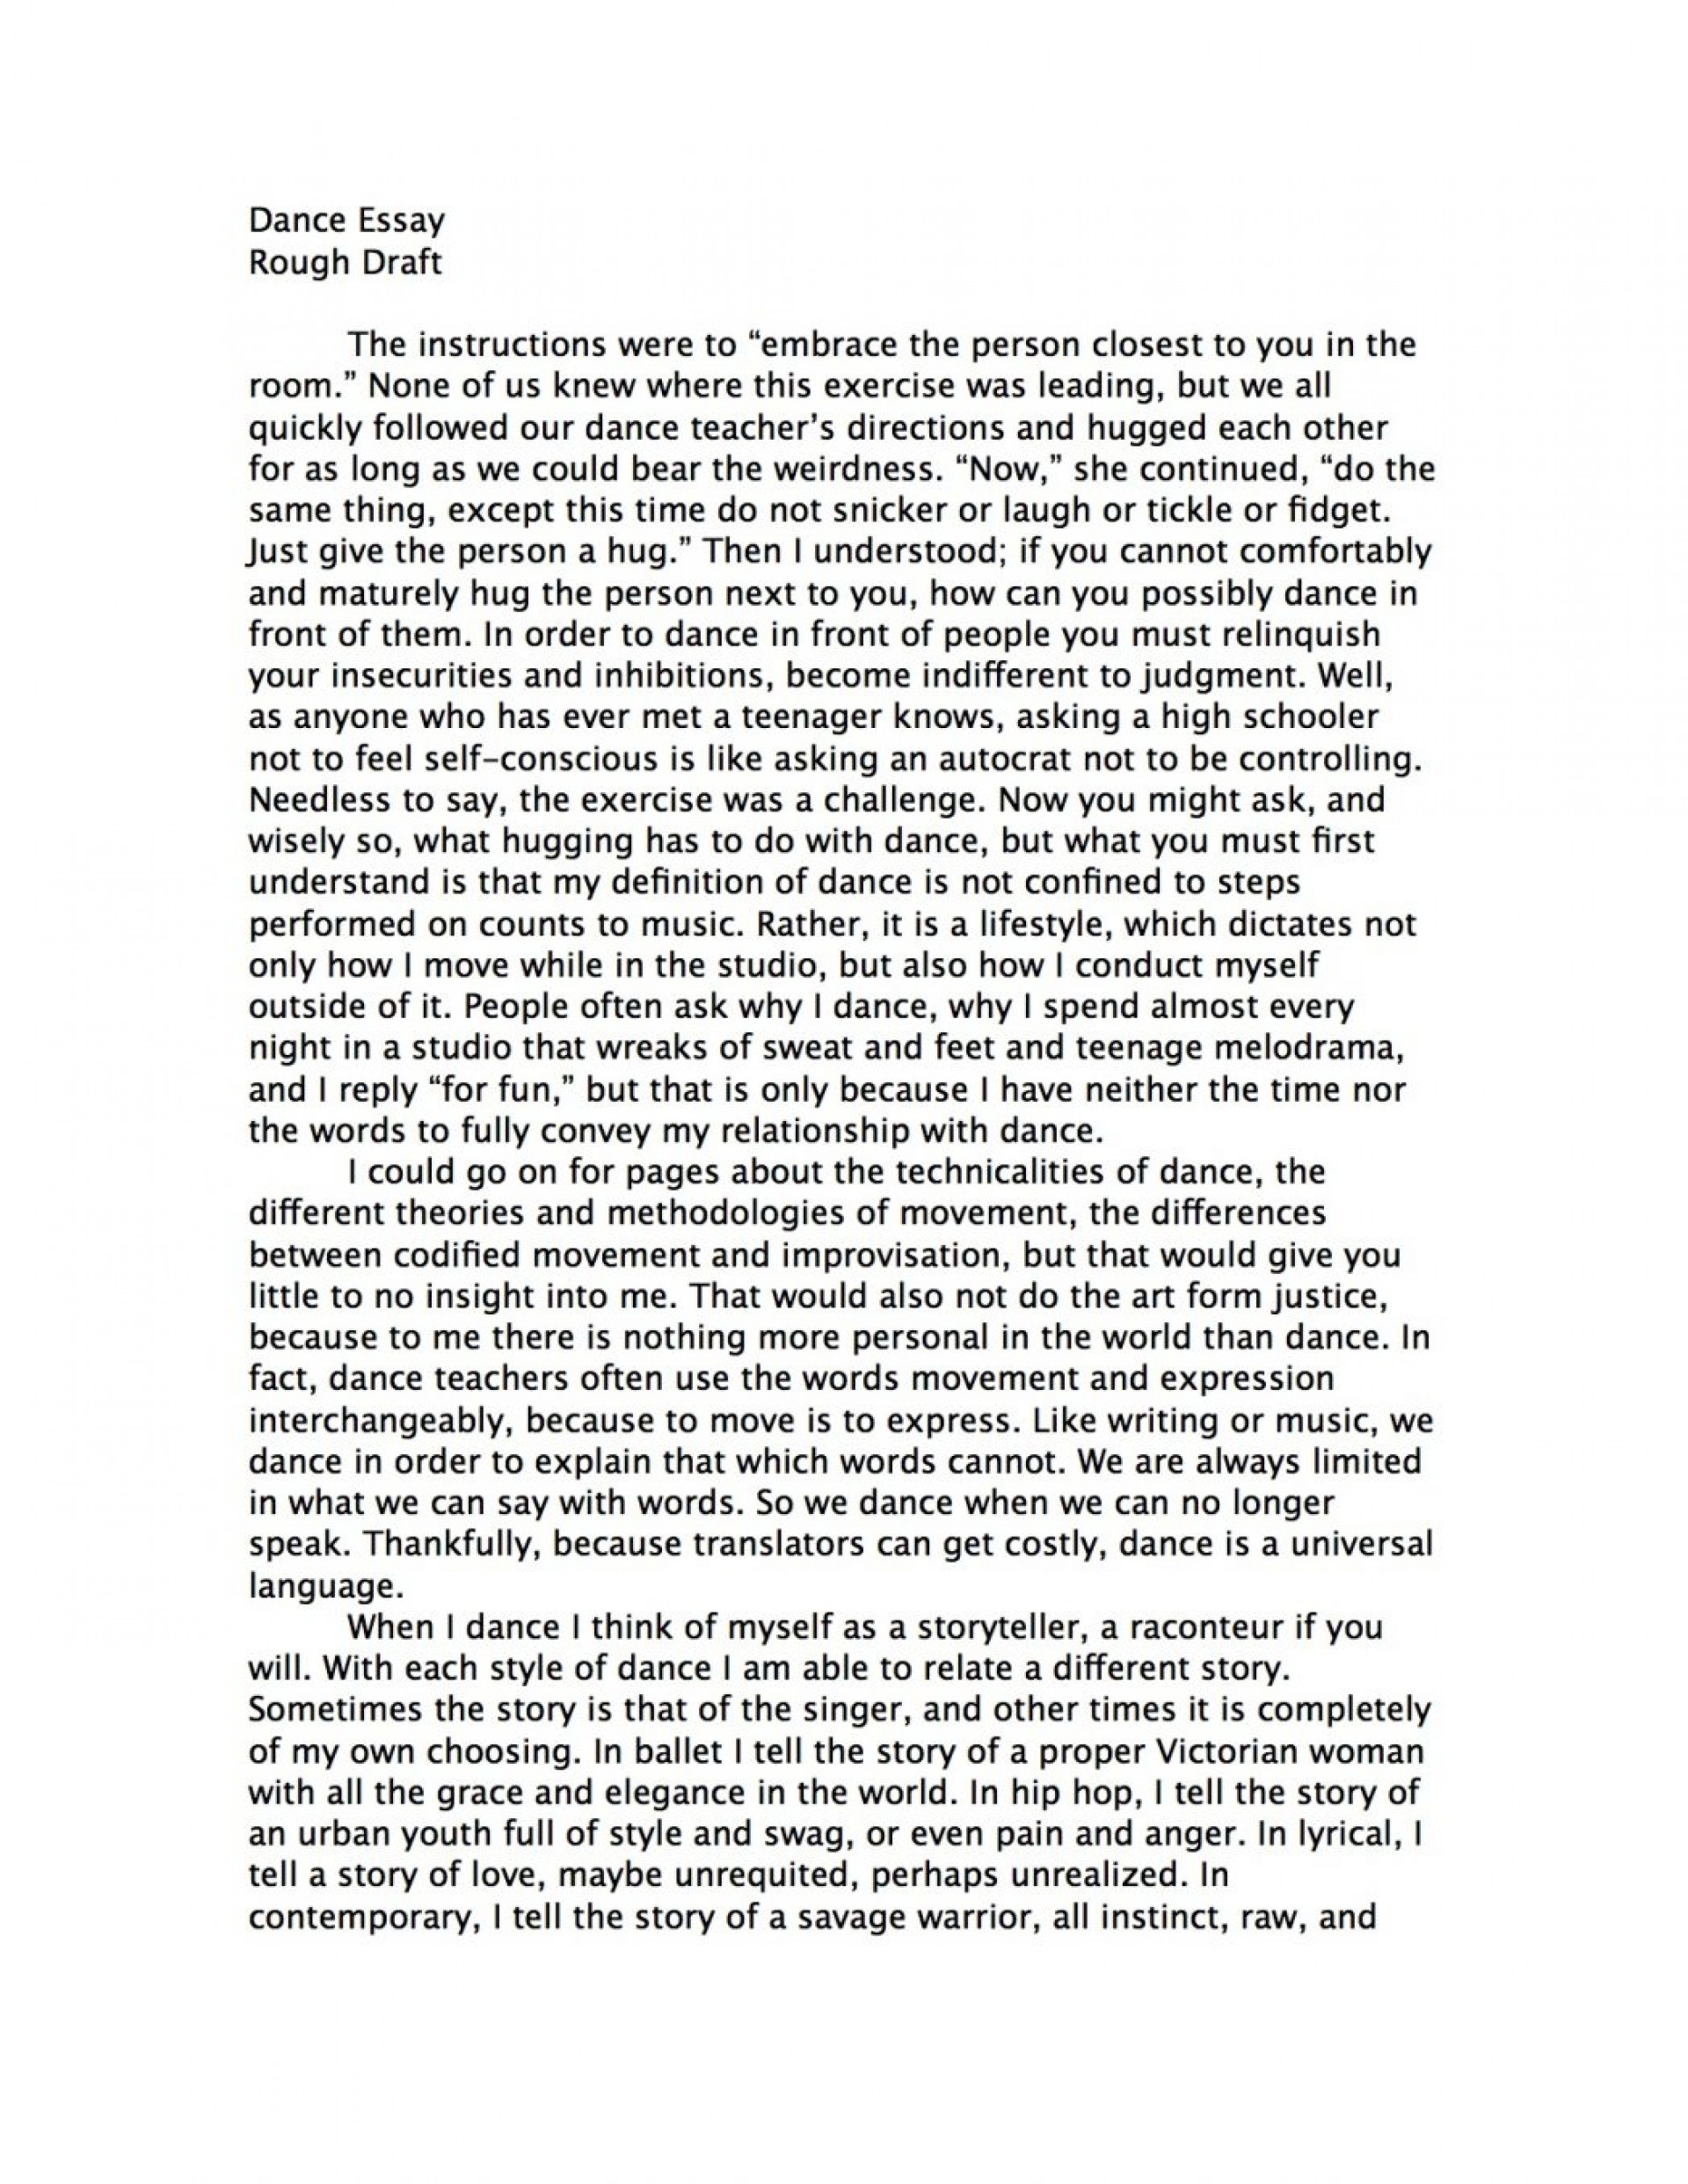 004 How To Start An Essay For College Example Business Entrance Essays Examples About Yourself Rebecca Nueman Dance Writing Scholarship Prompt Your Background With Stupendous Write Autobiography Scholarships 1920